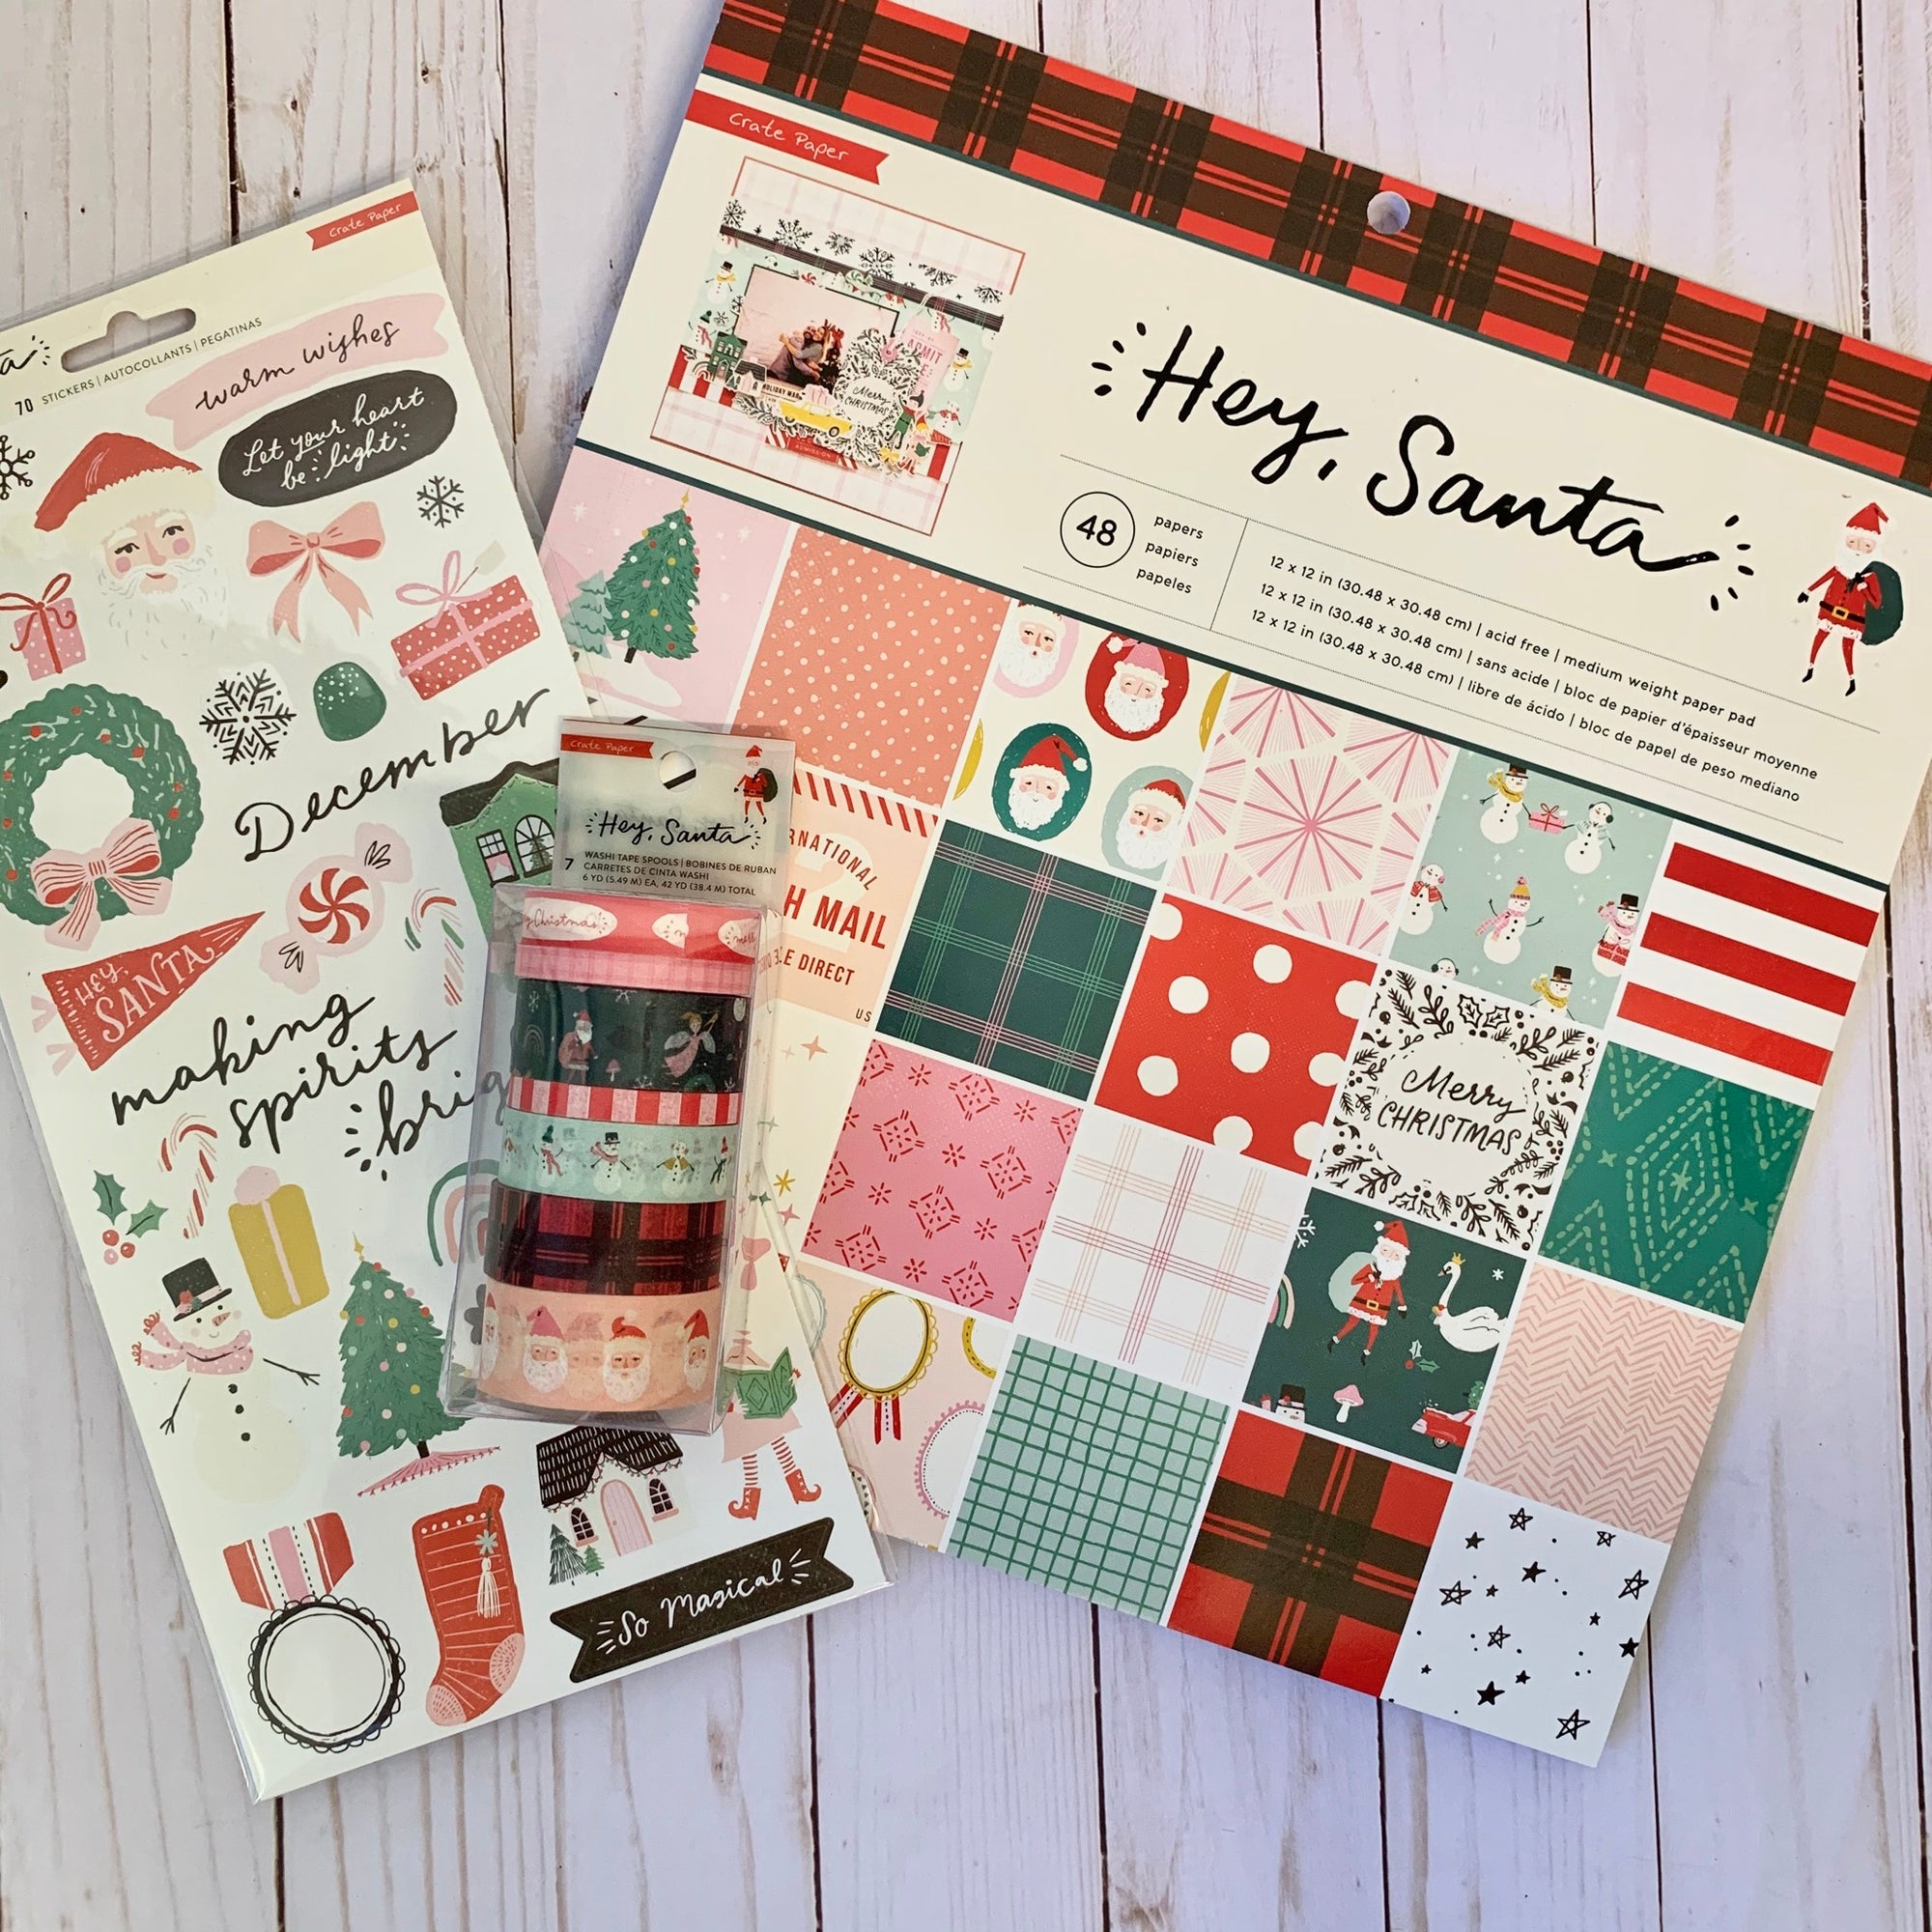 Slimline Card Swap - 20 Slimline Cards - Crate Paper - Hey Santa - For Scrapbooking